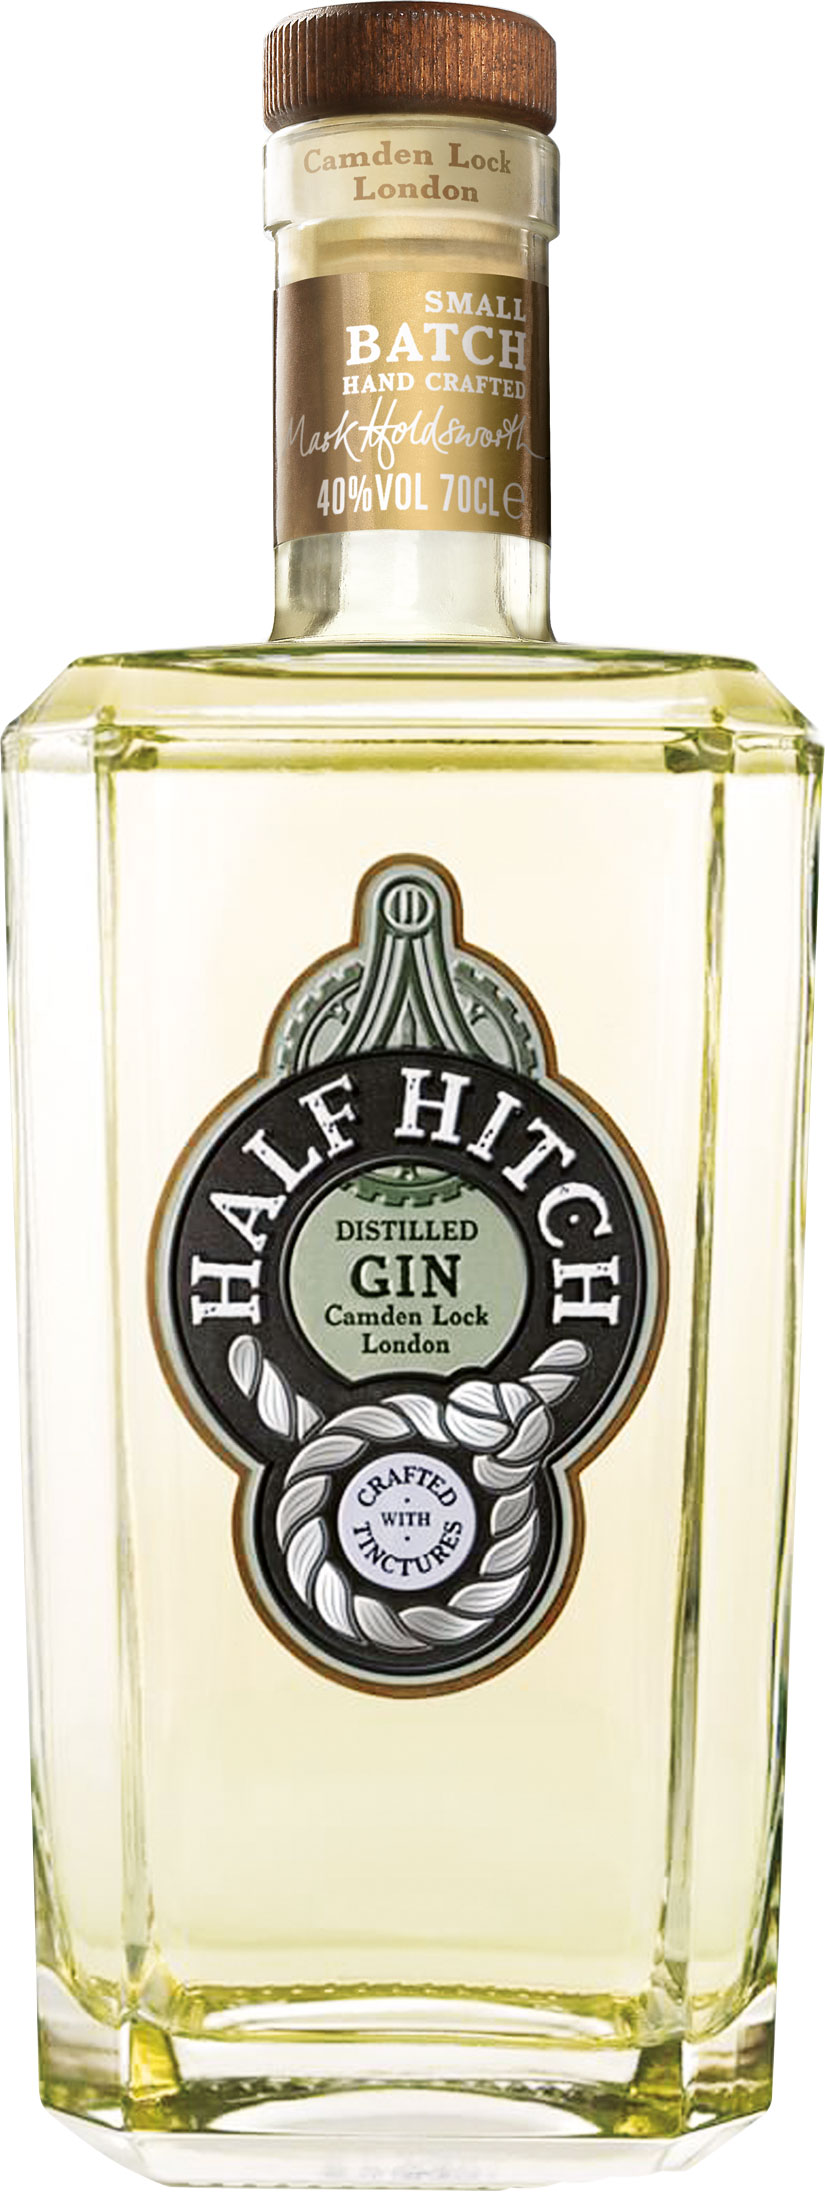 Half Hitch - Earl Grey Tea Gin 70cl Bottle